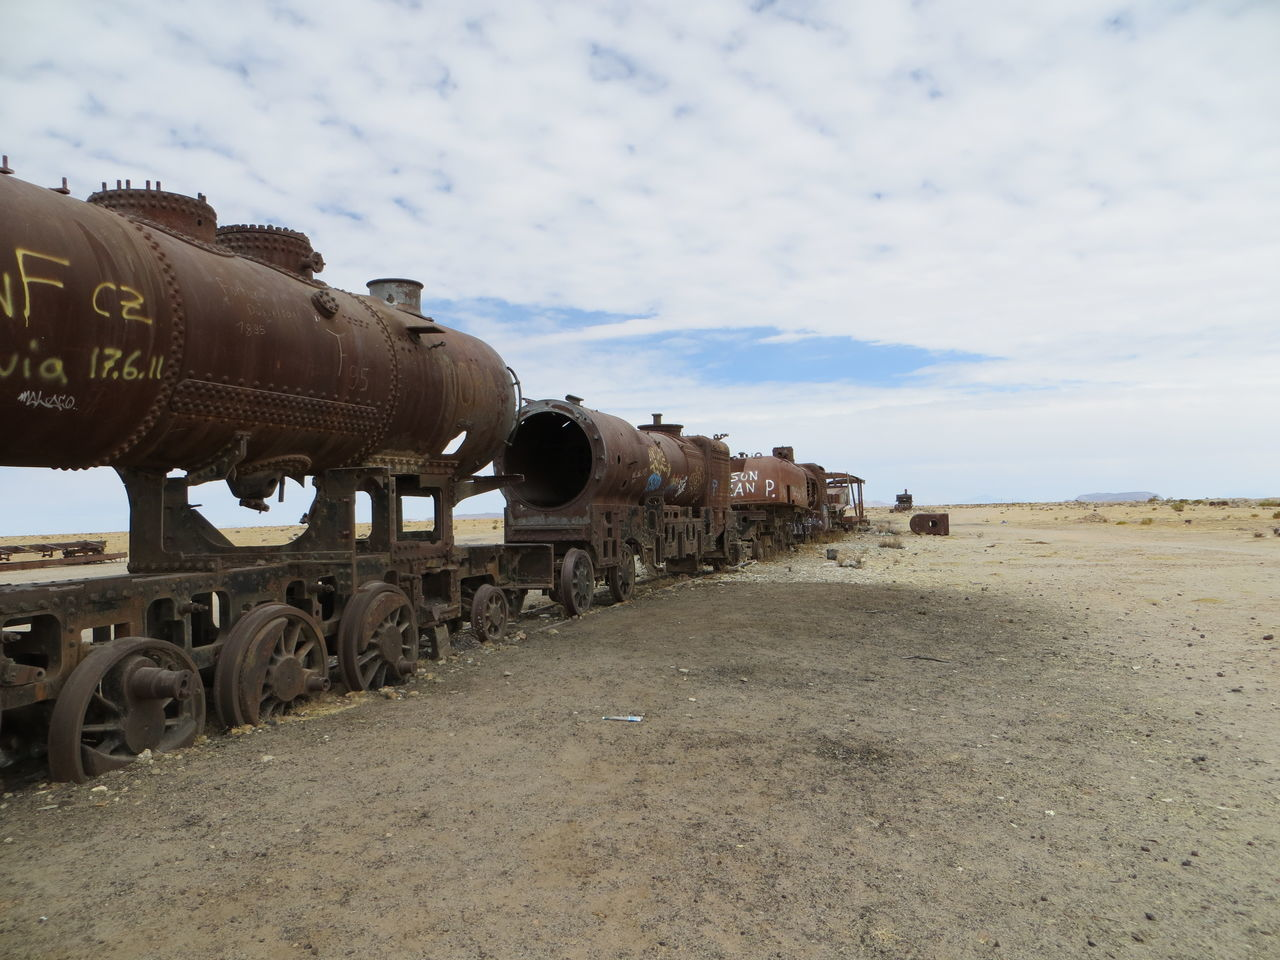 Abondened Abondened Places Ancient Civilization The KIOMI Collection Bolivia Bolivia Uyuni Car Culture Environmental Damage Factory Field History Industry International Landmark Land Vehicle Machinery Mode Of Transport No People Outdoors Pollution Smoke Structure Train Transportation Stones